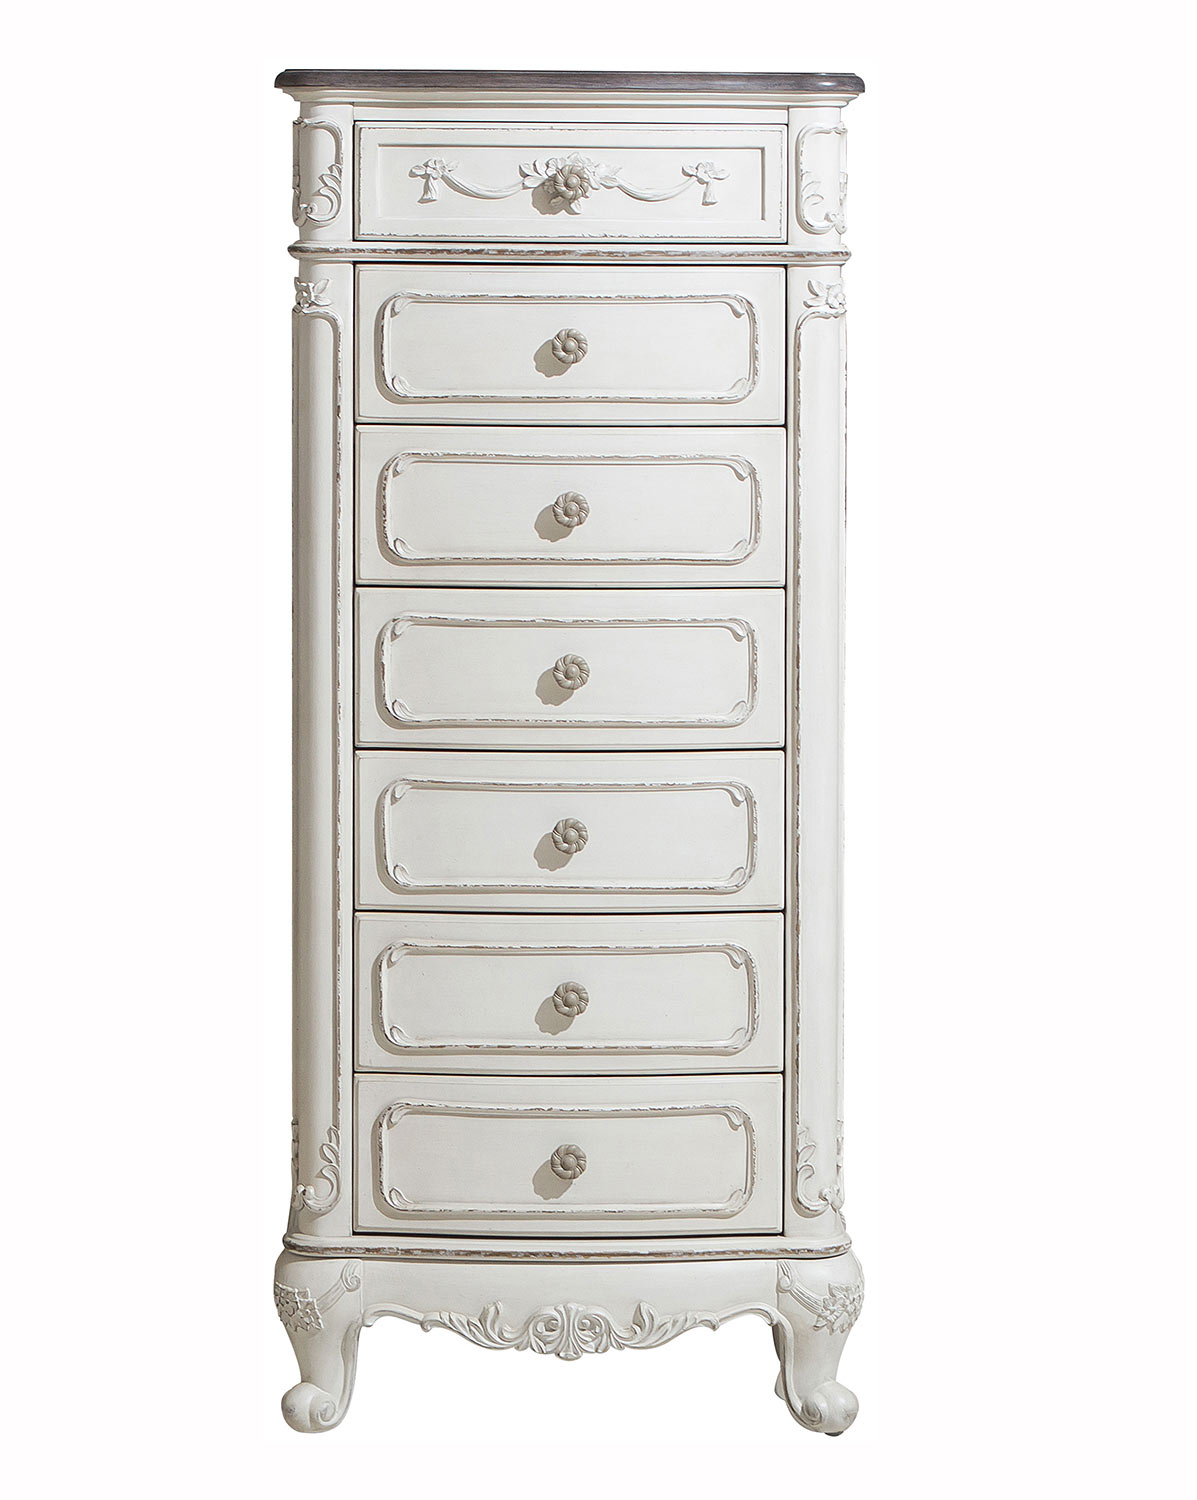 Homelegance Cinderella 7-Drawer Tall Chest - Antique White with Gray Rub-Through